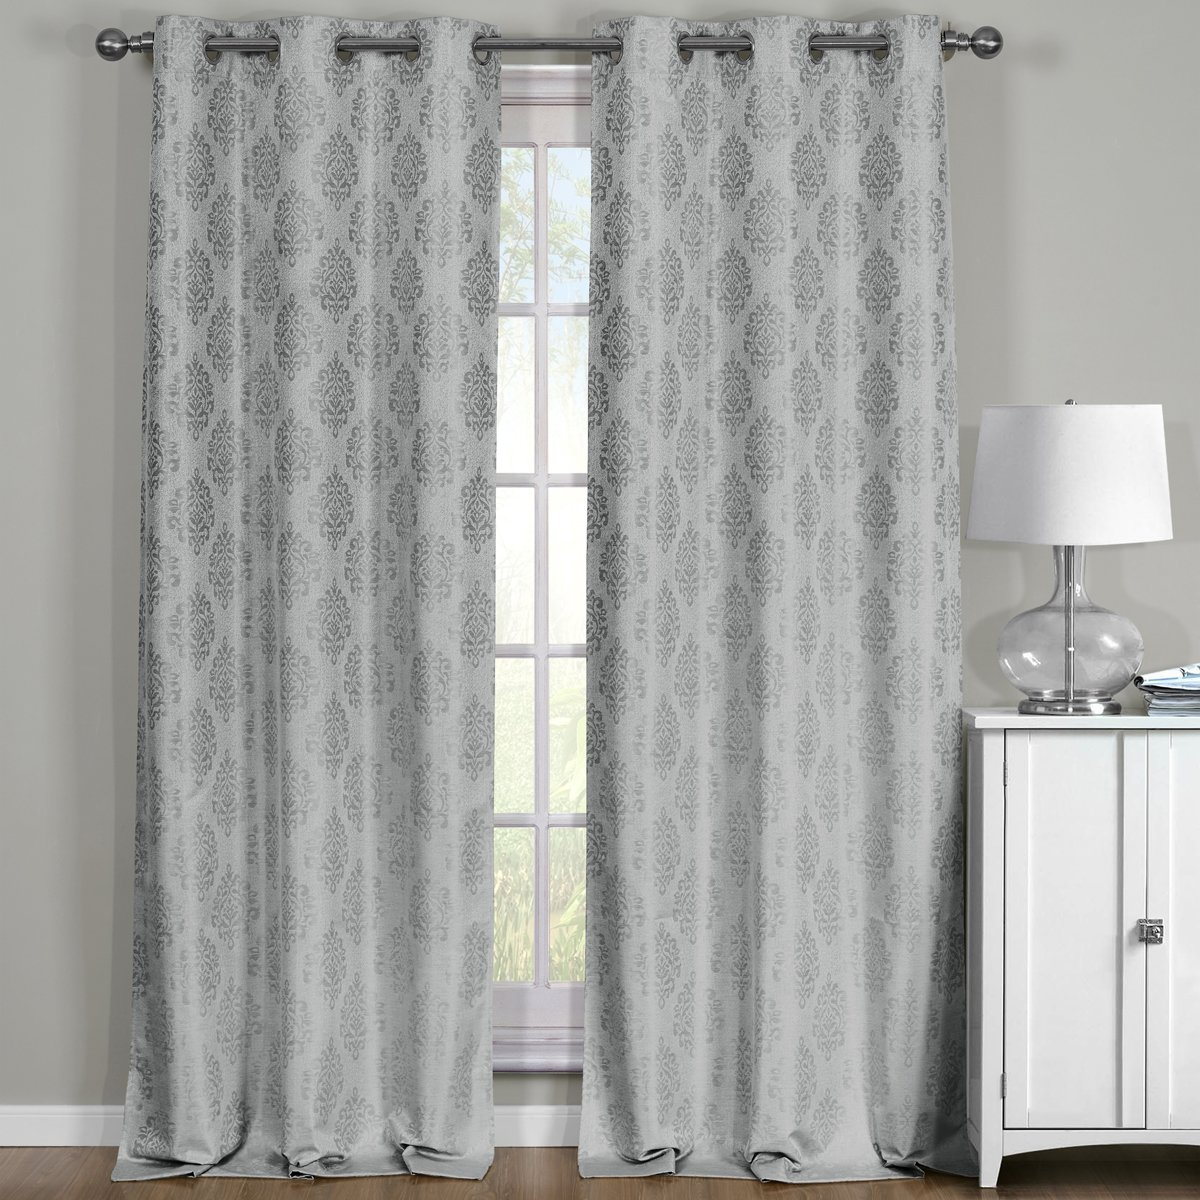 Paisley Jacquard Gray, Top Grommet Blackout Window Curtain Panels, Pair / Set of 2 Panels, 38x84 inches Each, by Royal Hotel